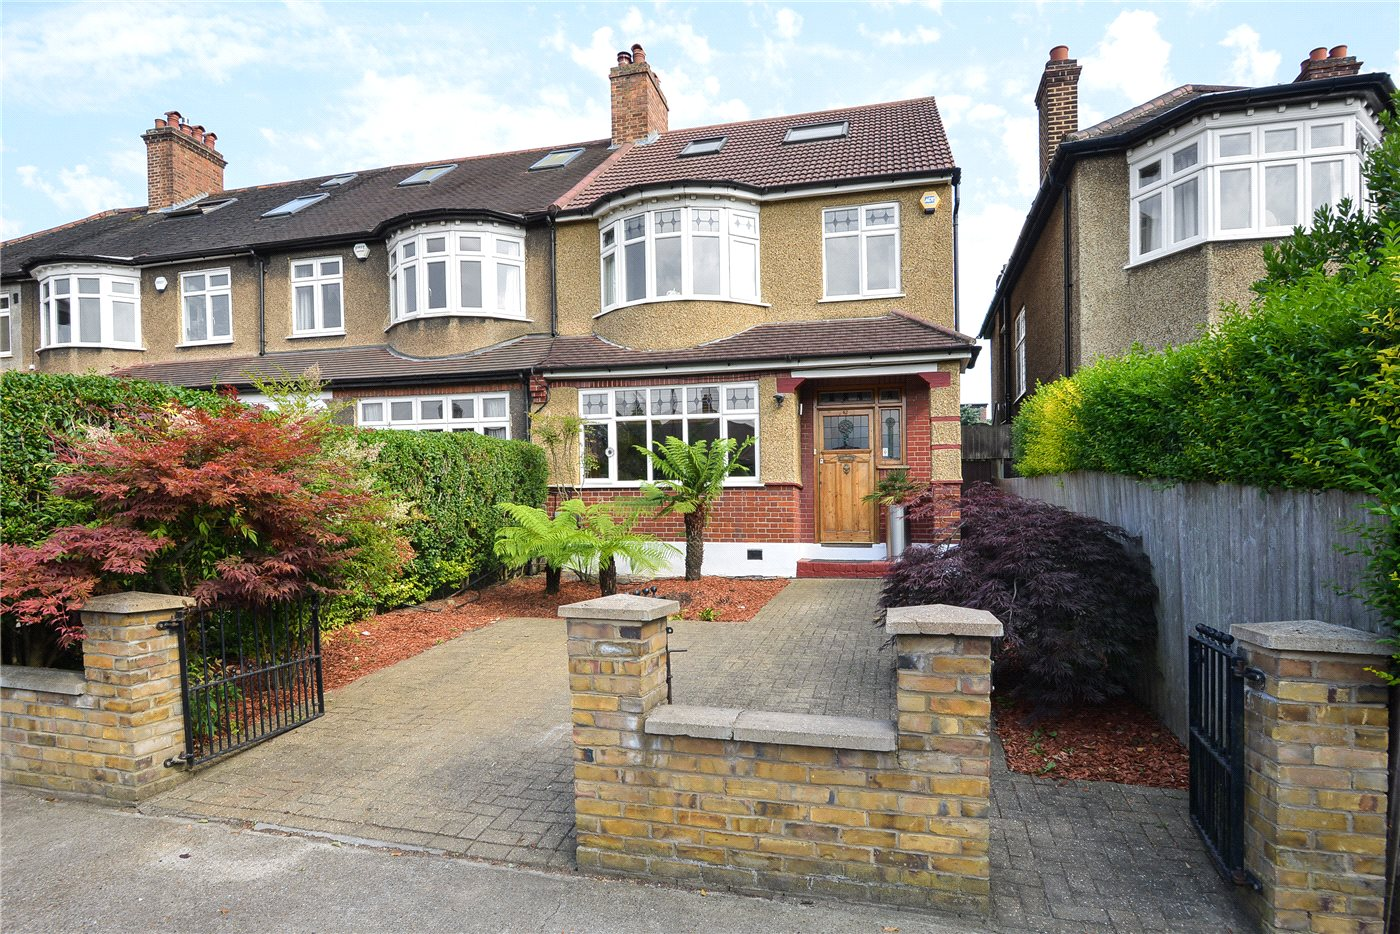 4 Bedroom Property For Sale In Mundania Road East Dulwich